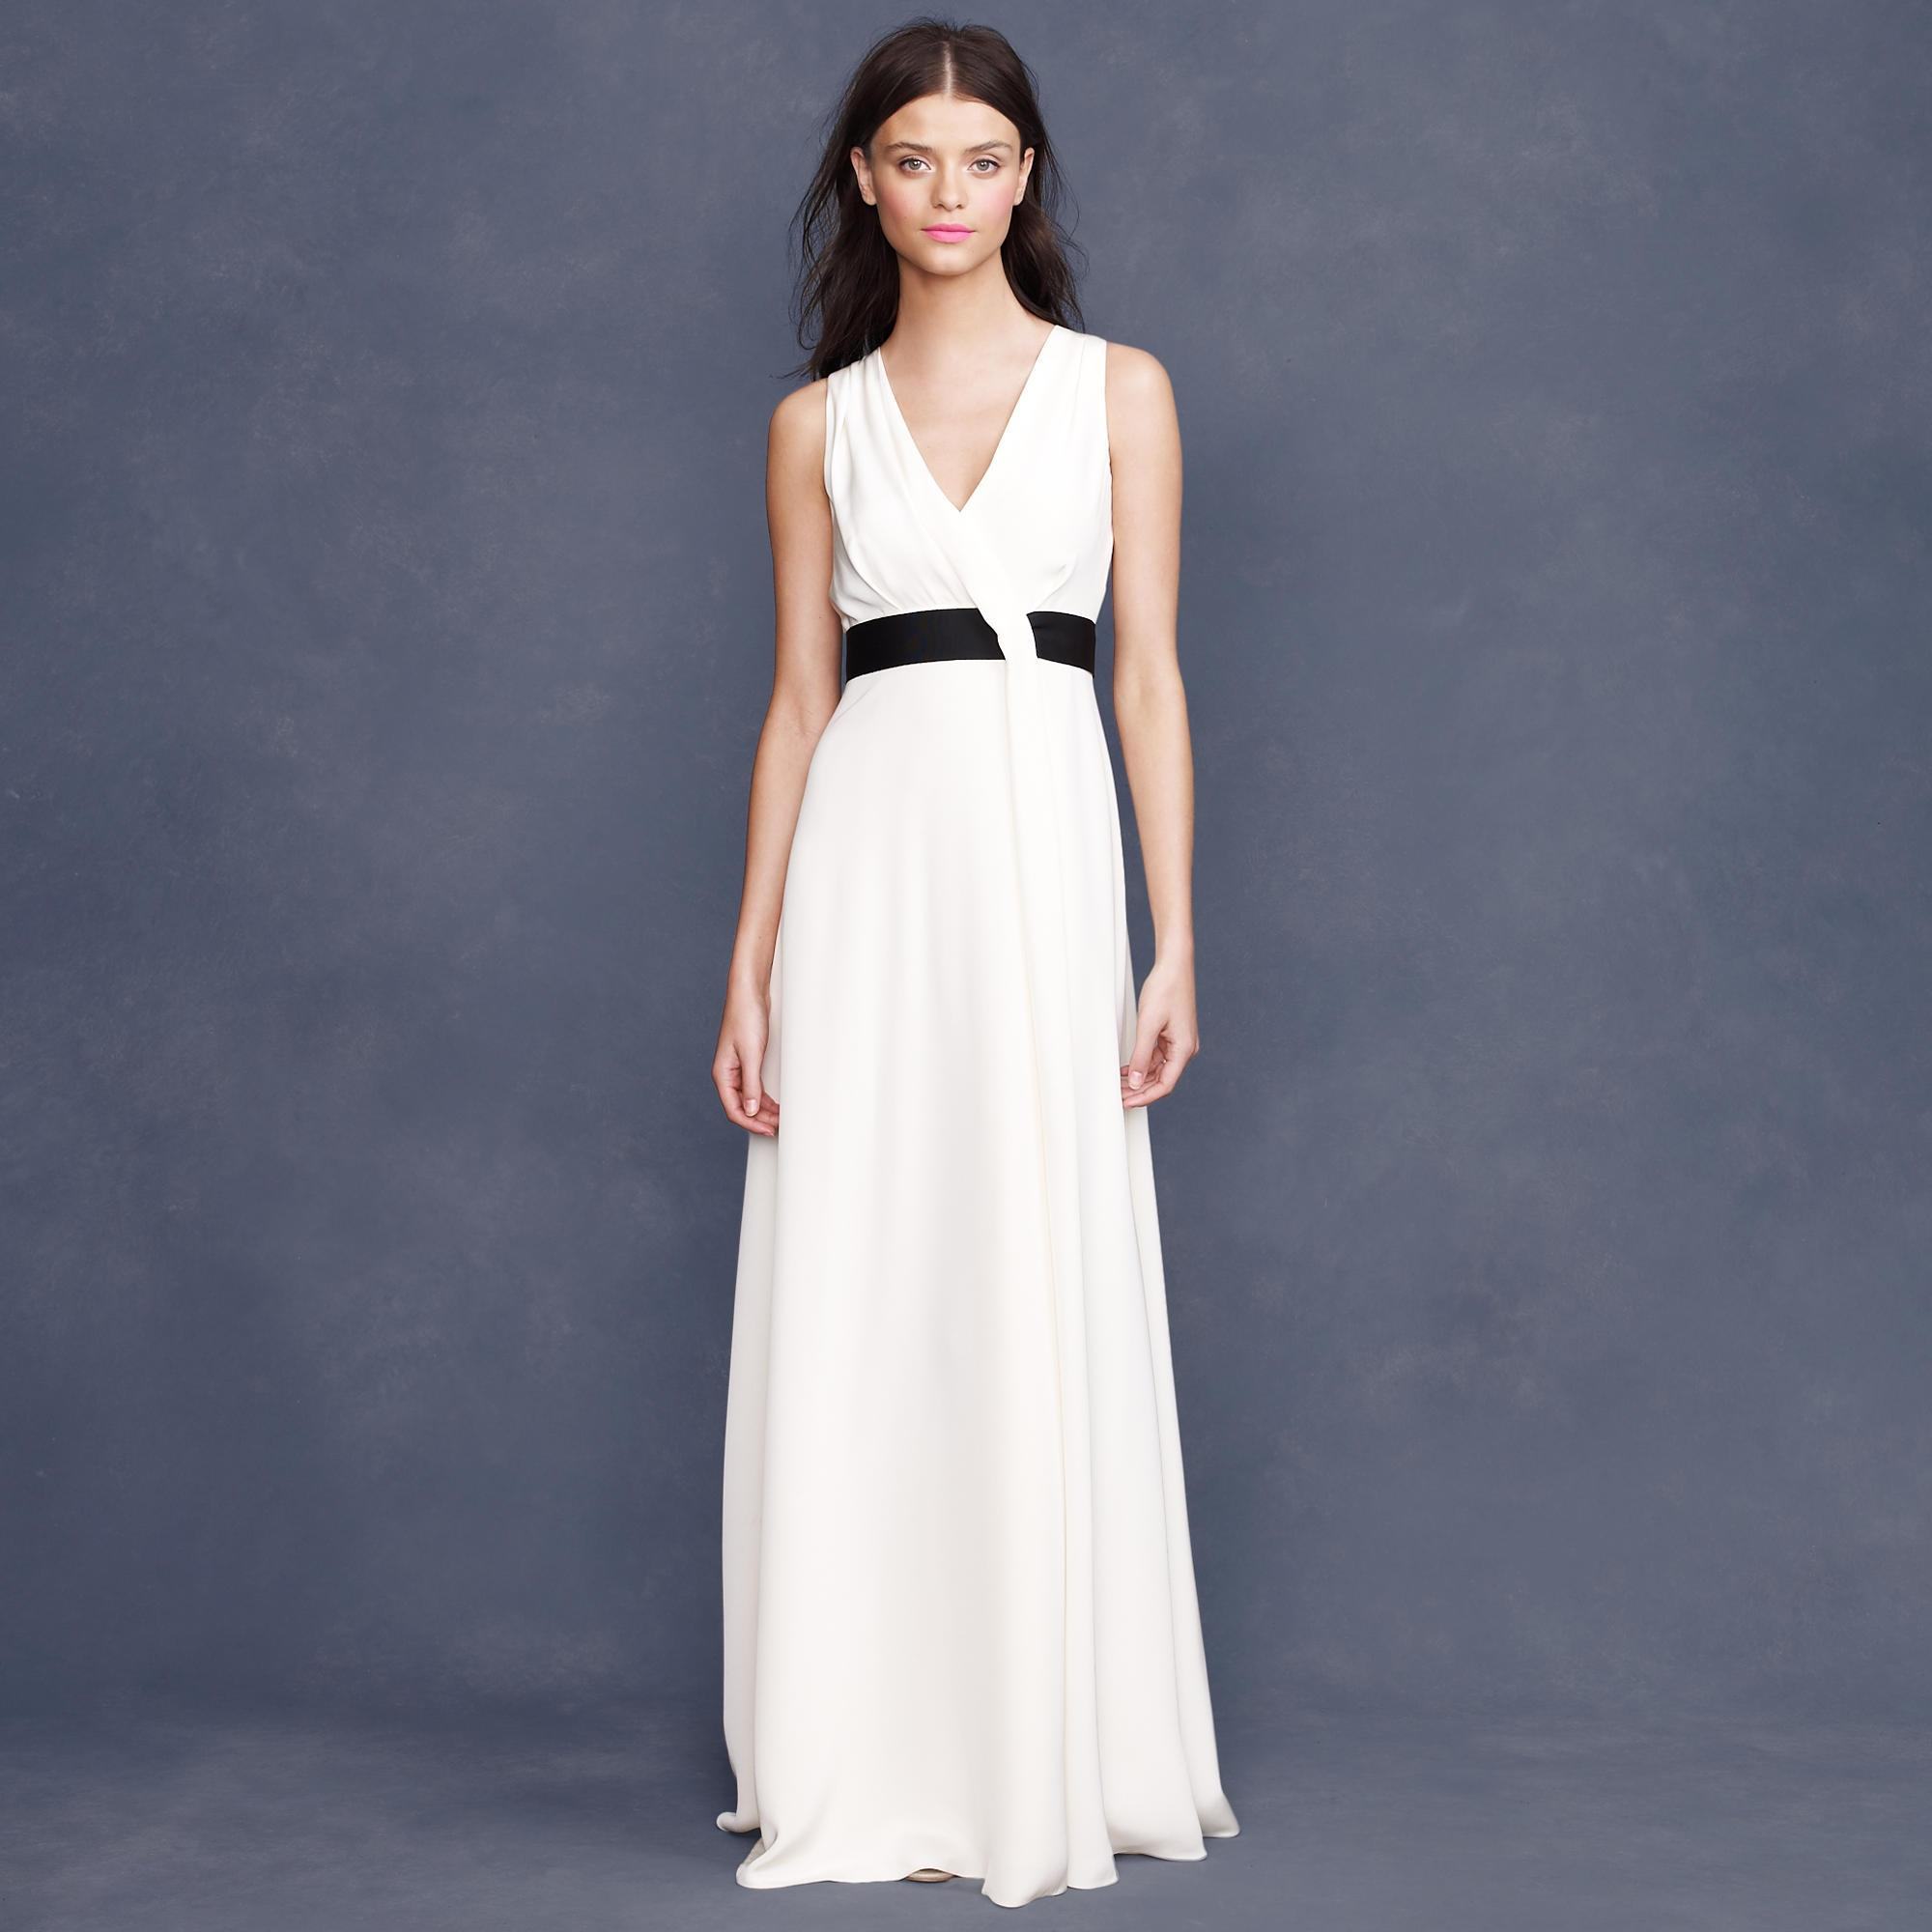 Wedding Gown Sale Online: J.Crew Gala Wedding Dress On Sale, 33% Off